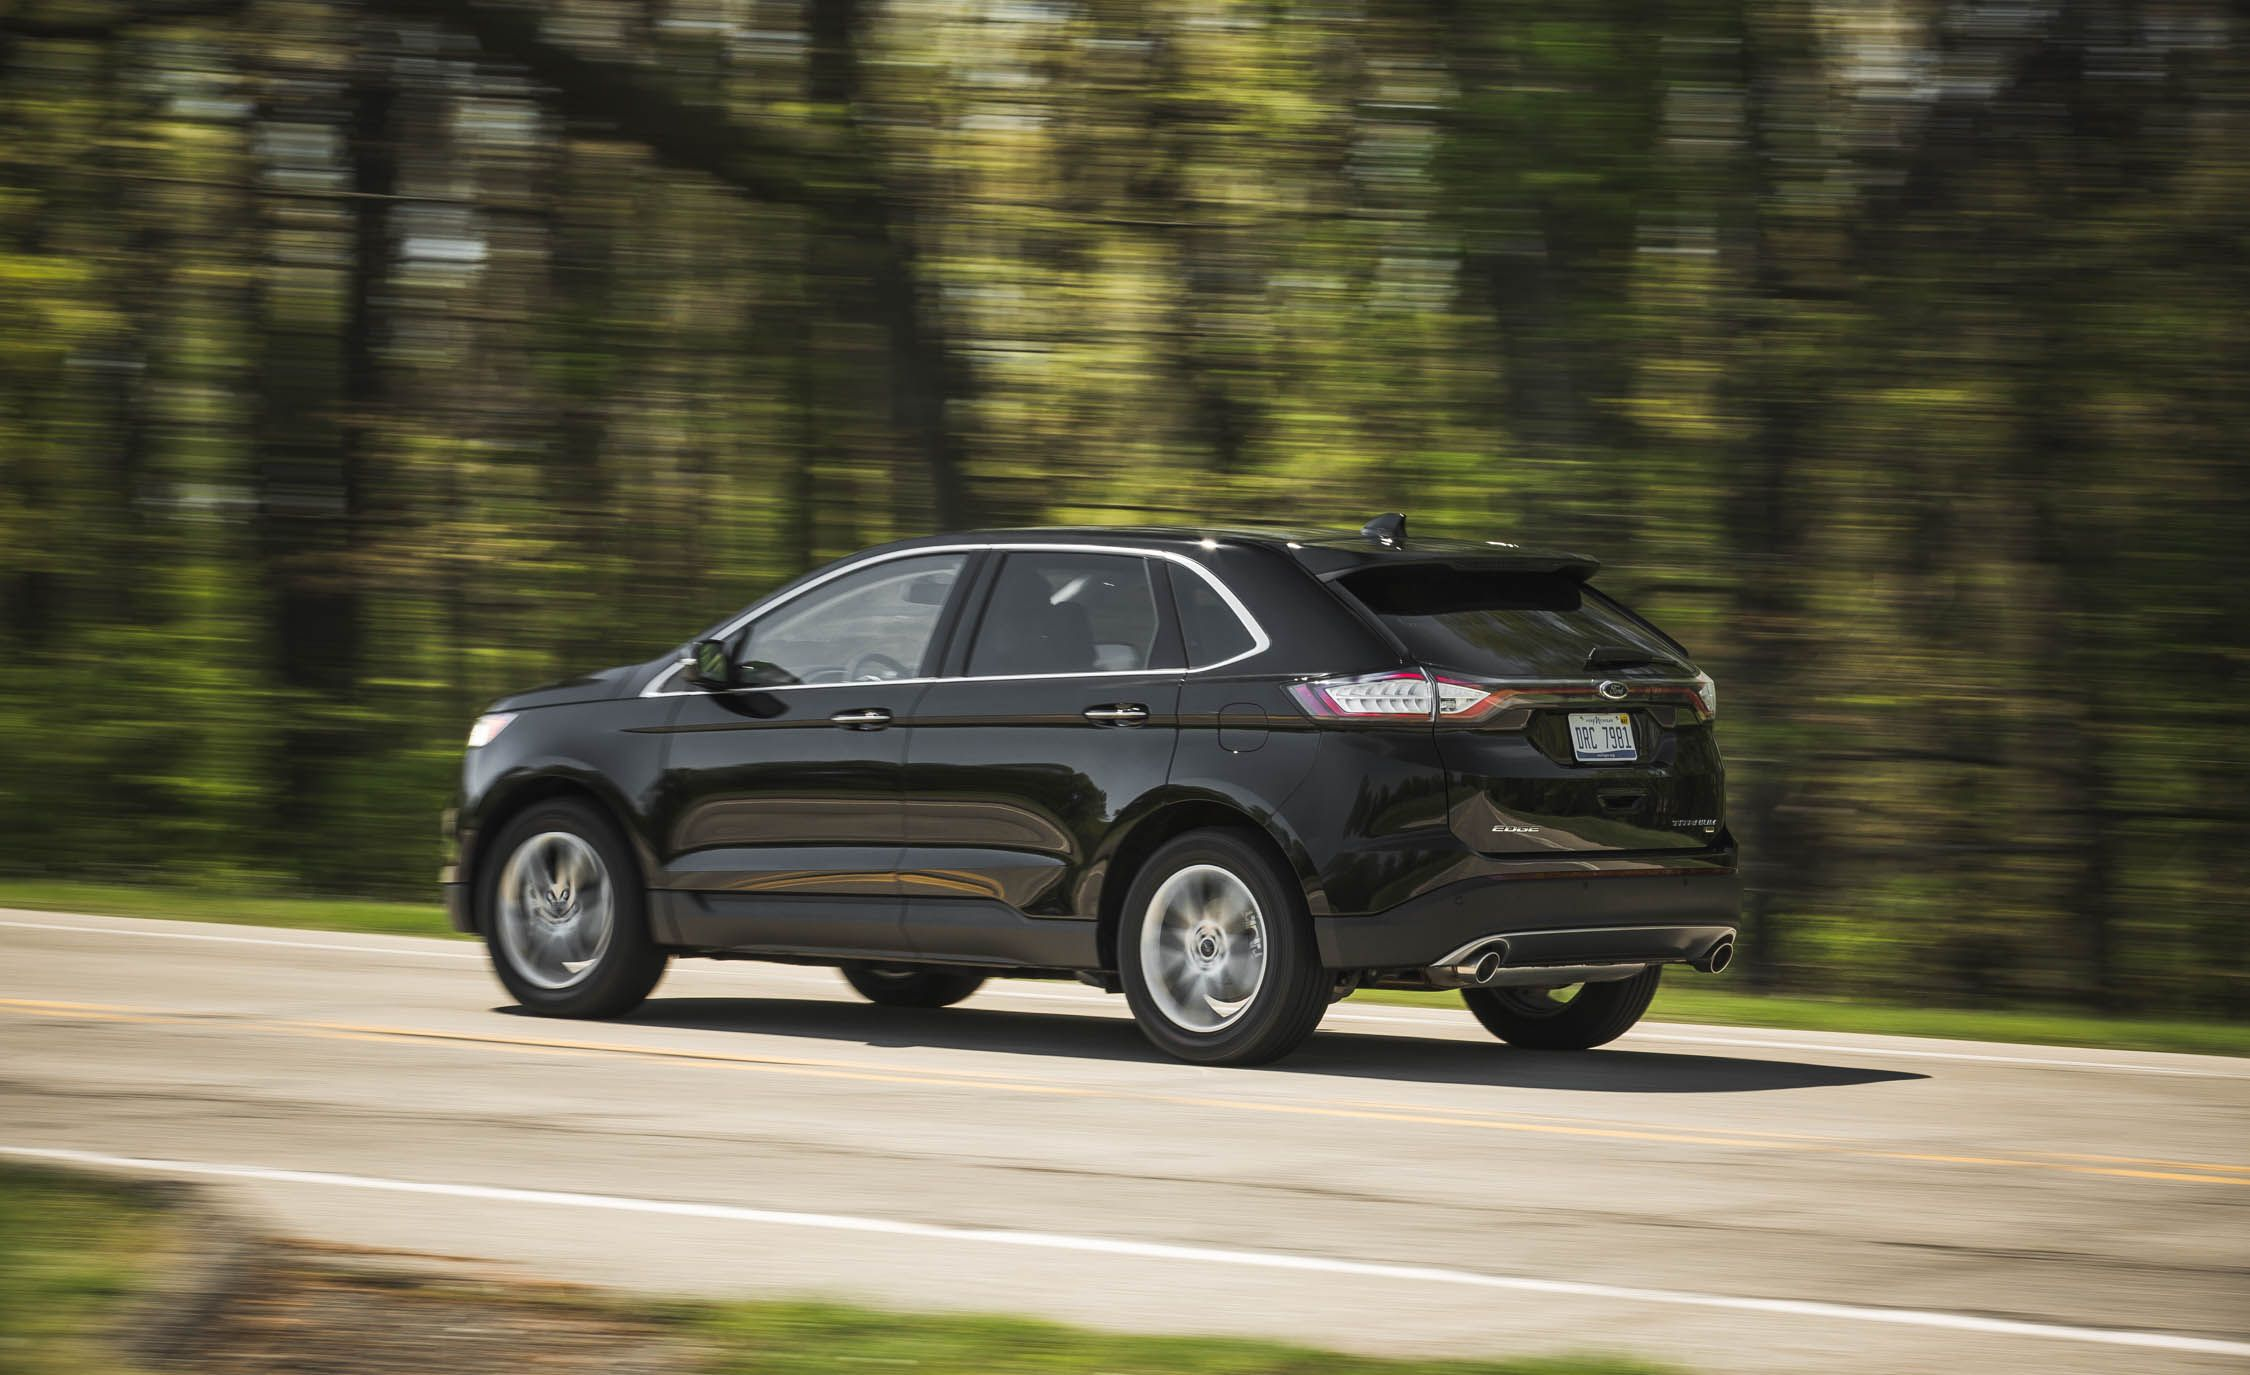 Ford Edge Gas Mileage >> 2017 Ford Edge | Fuel Economy Review | Car and Driver